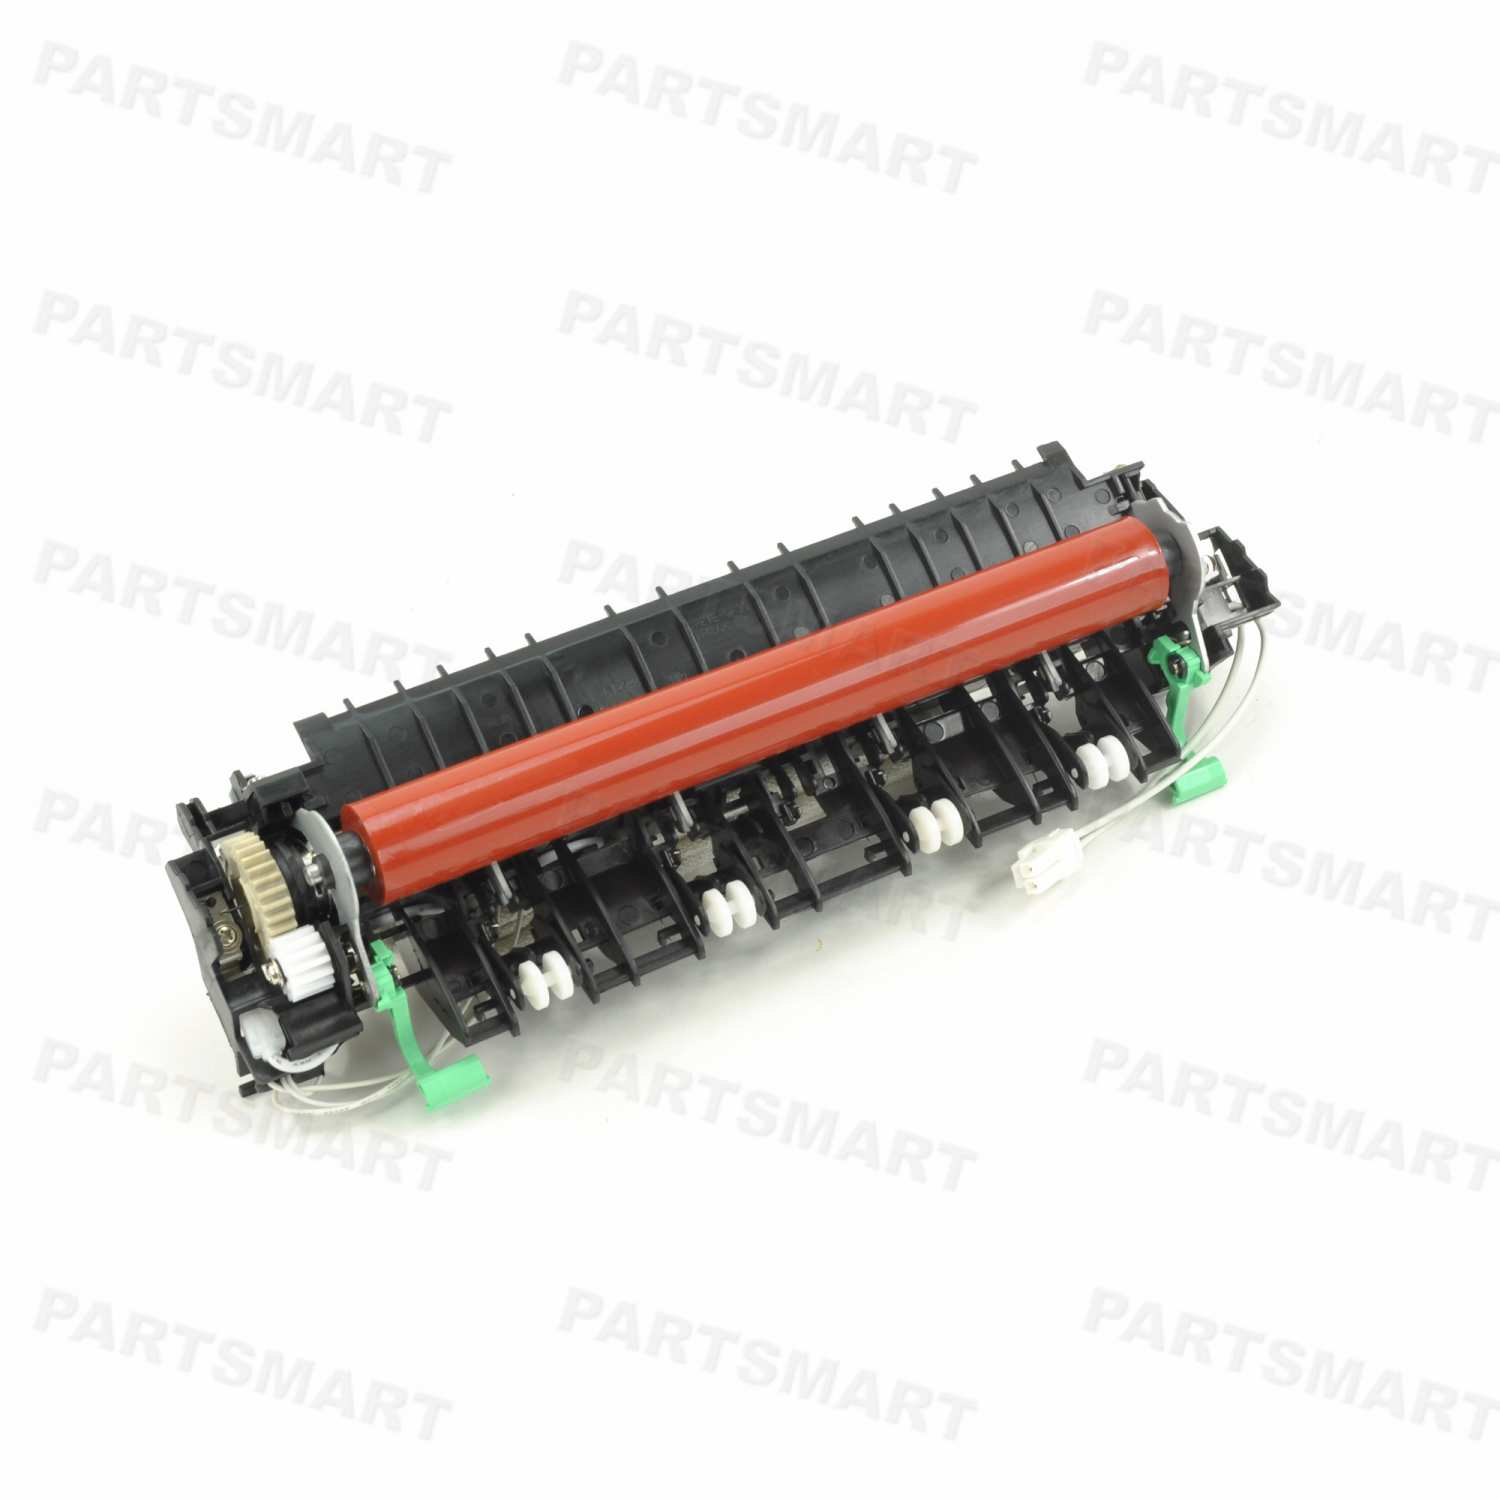 LY2487001 Fuser Assembly (110V) for Brother HL-2240,2250,2270,2280,7240, and 7360